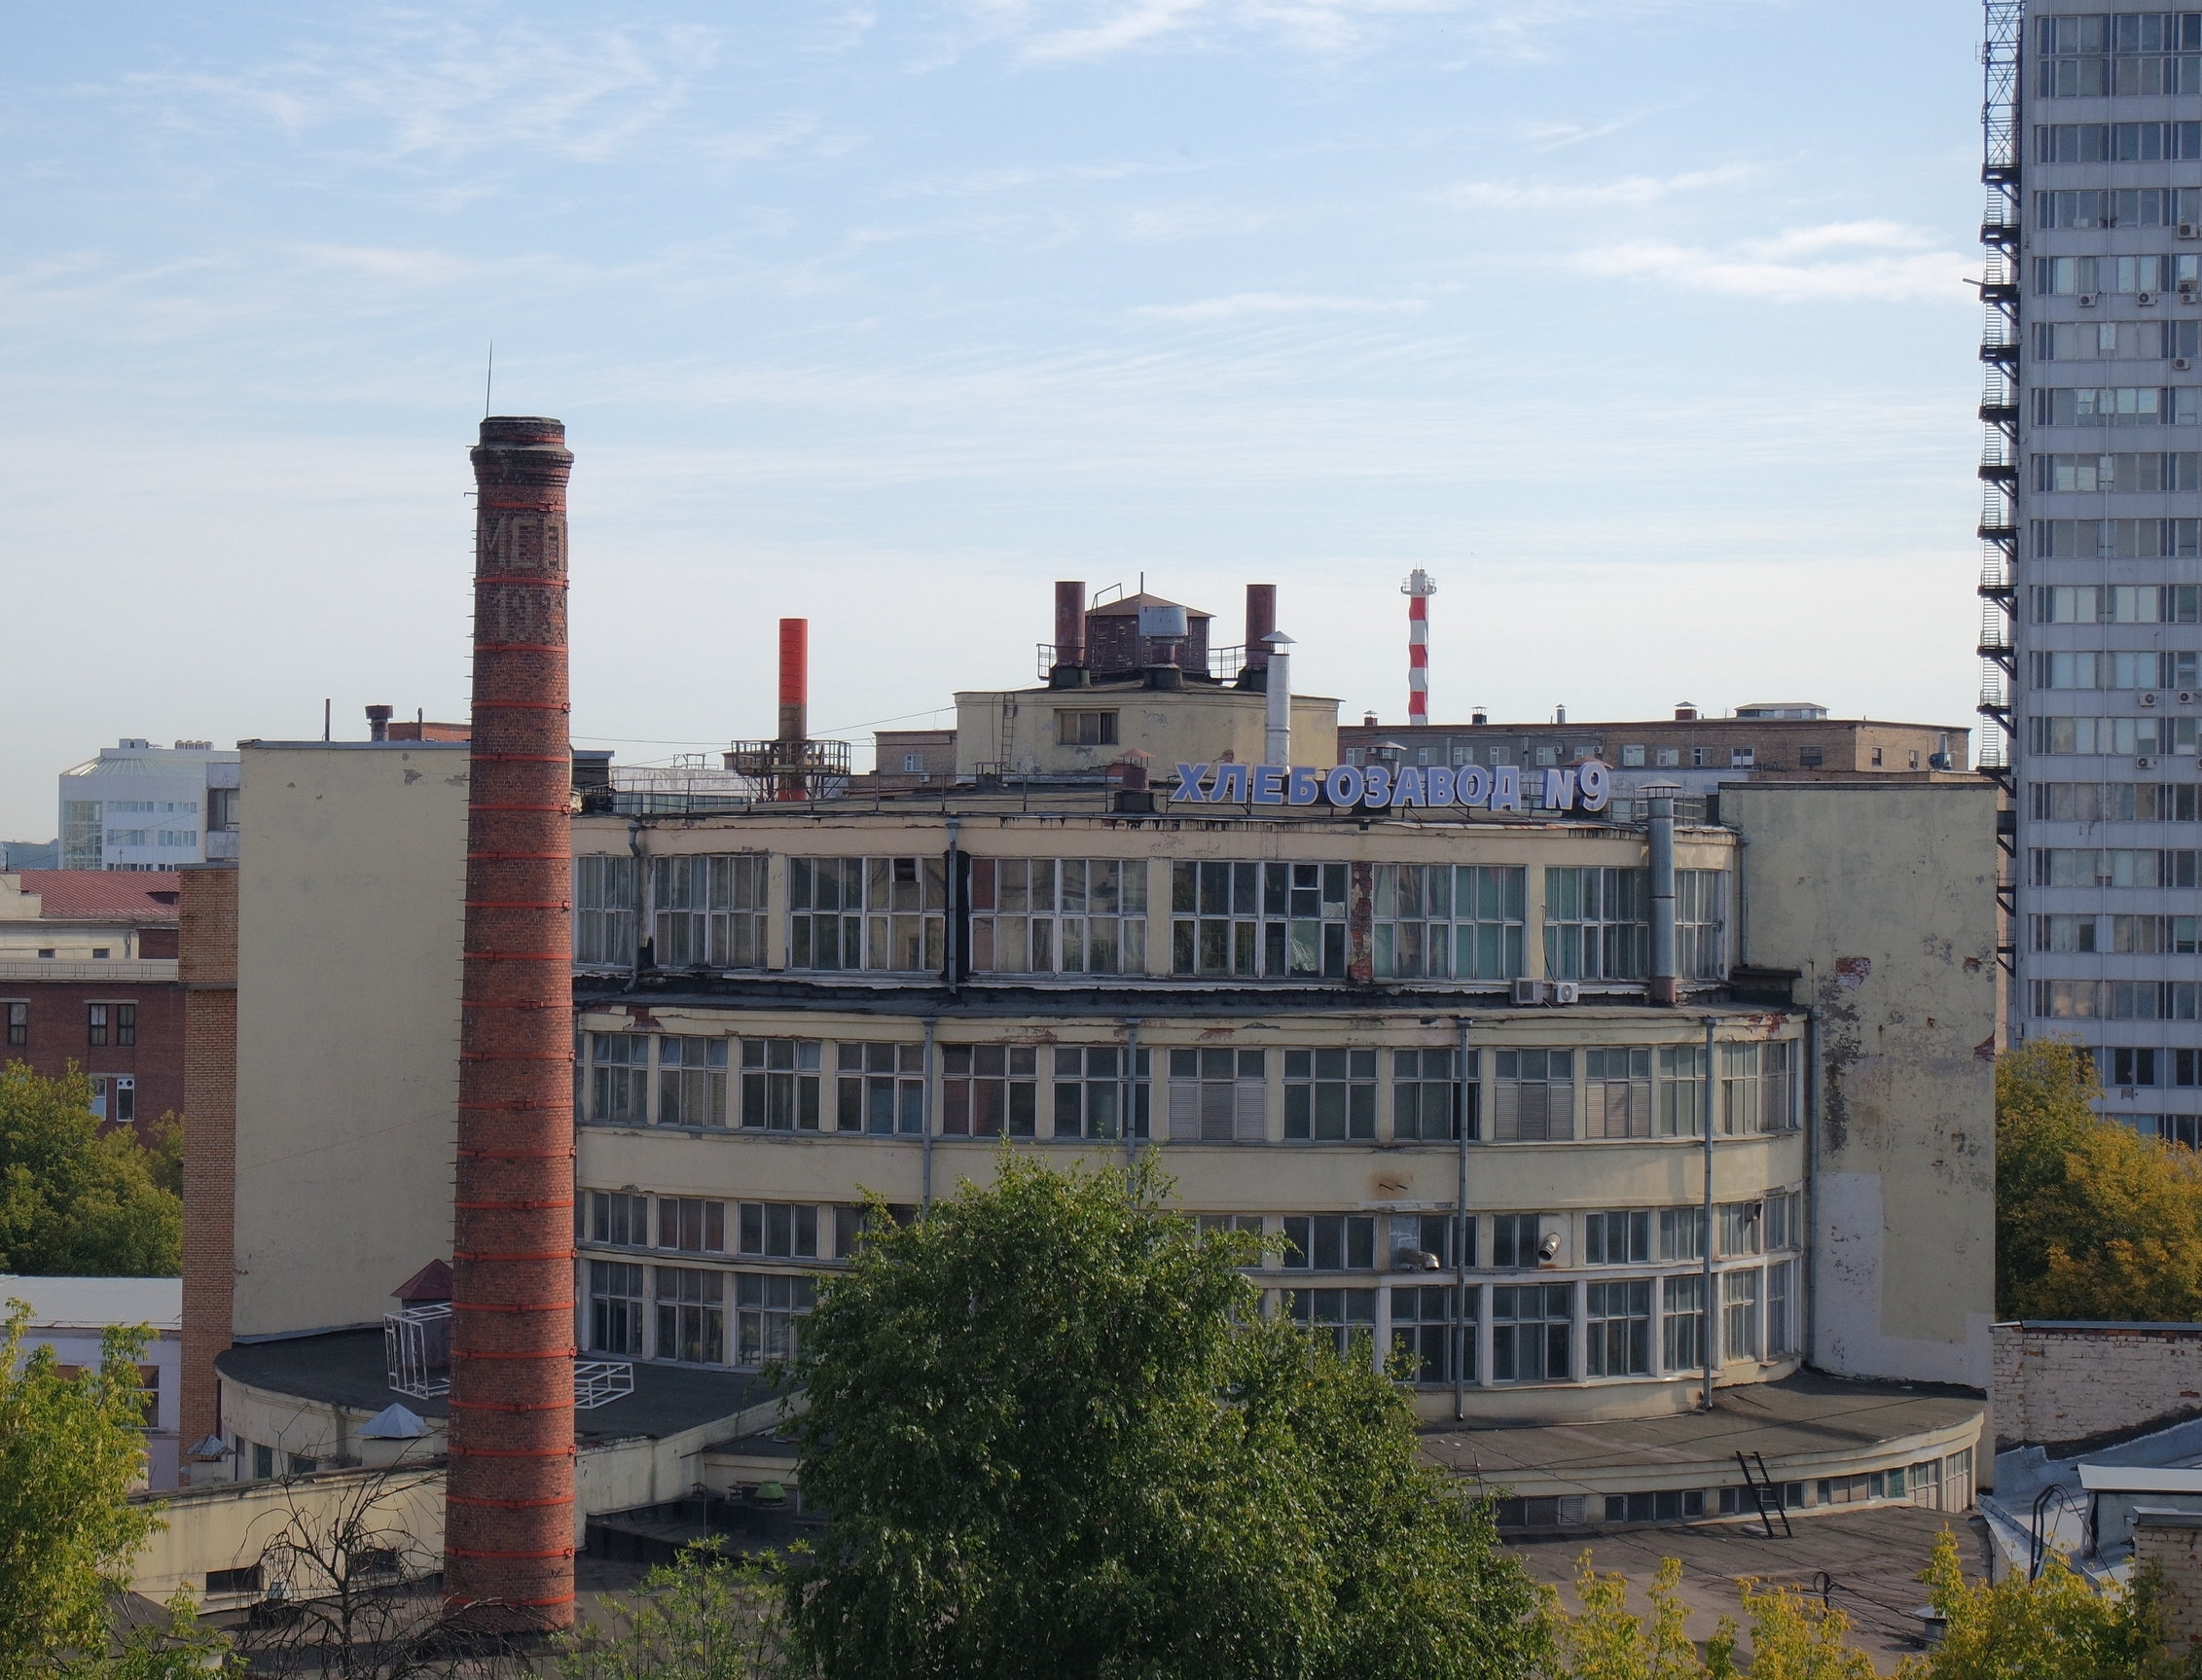 Khlebozavod (Bread Factory) No. 9 in Moscow